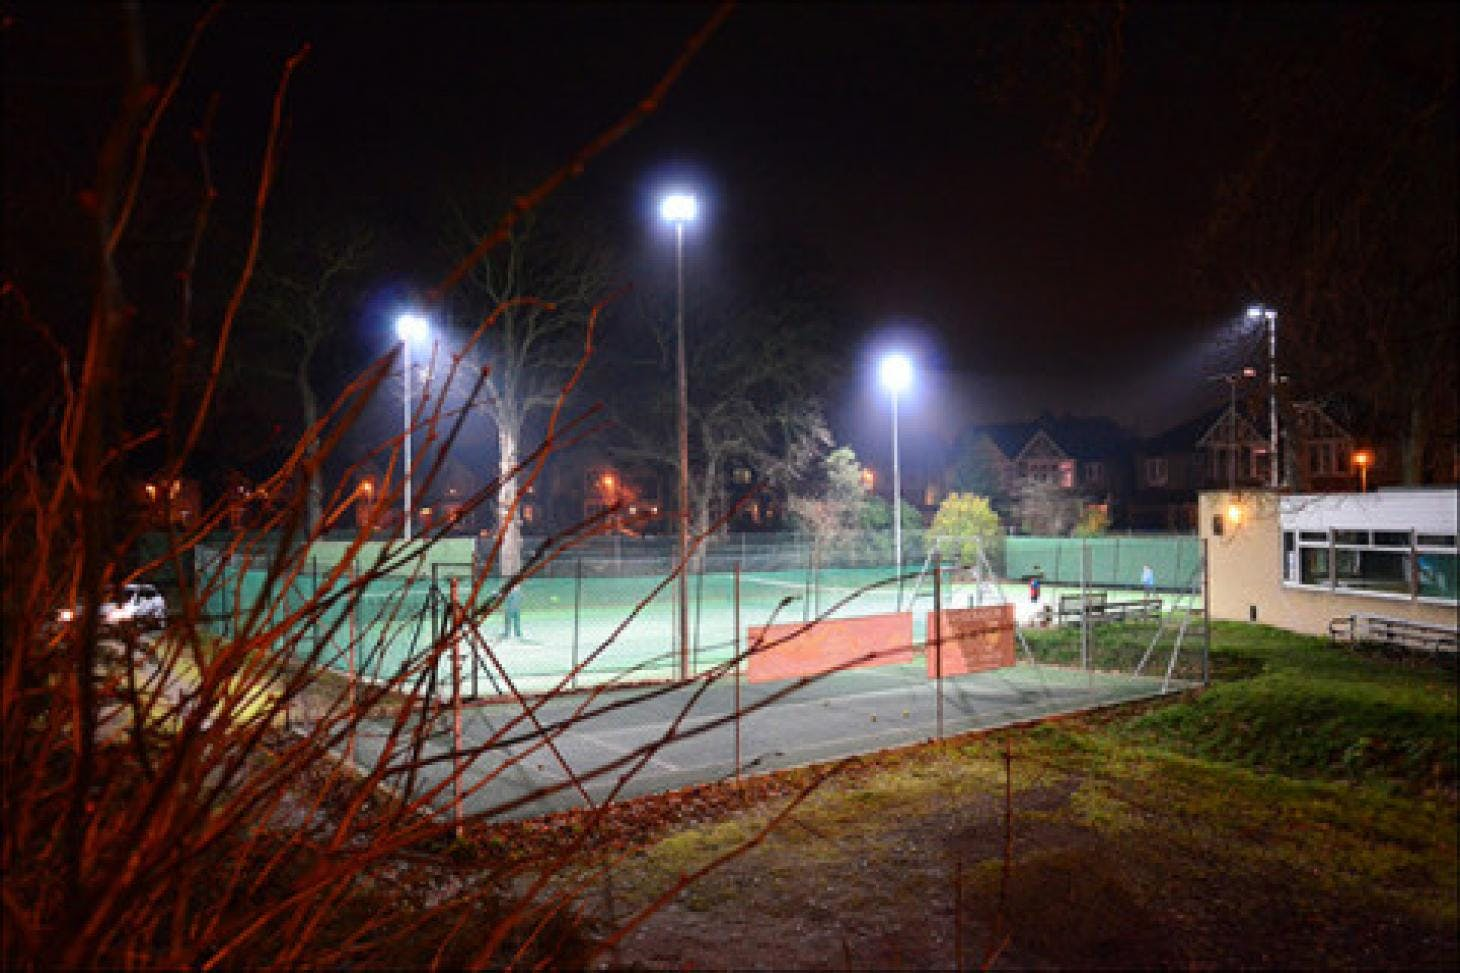 Aldersbrook Lawn Tennis Club Outdoor | Hard (macadam) tennis court